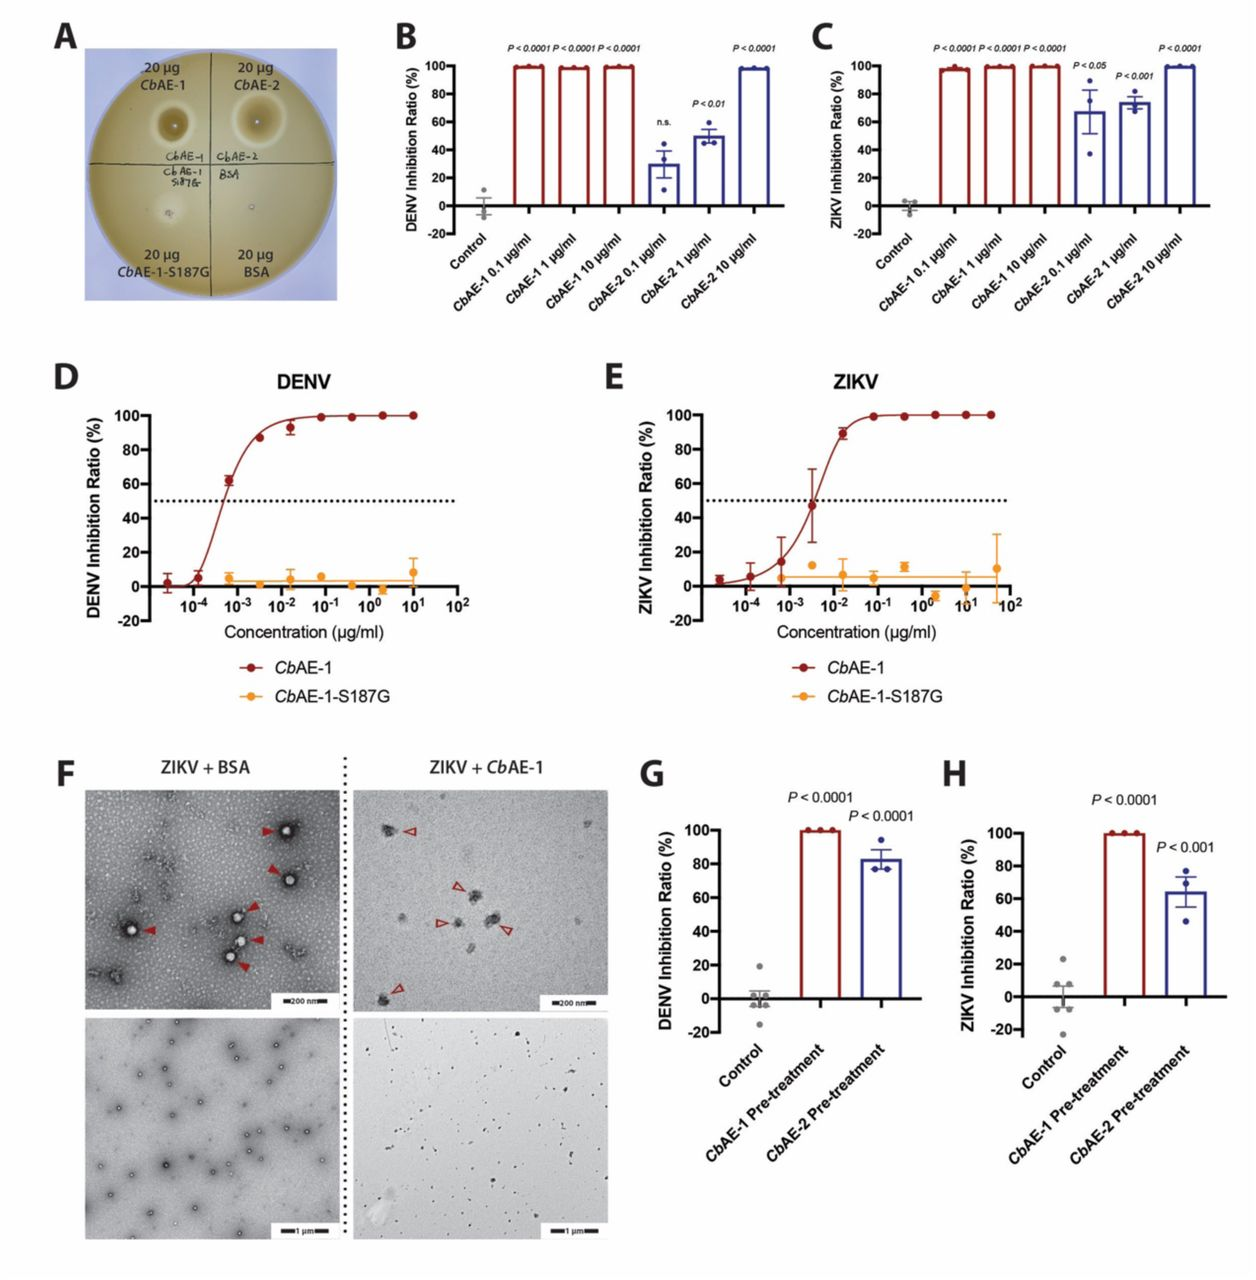 The virucidal activity of Cb AEs is mediated by enzymatic degradation of the viral lipidic envelope. (A) Lipase enzymatic activity of Cb AE-1, Cb AE-2 and Cb AE-1-S187G measured via an egg yolk agar plate assay. (B, C) Analysis of the exposure of DENV (B) or ZIKV (C) genomic RNA. DENV or ZIKV was first treated with serial concentrations of Cb AE-1, Cb AE-2 or BSA and then with RNase-A. Viral RNA degradation was evaluated by RT-qPCR. (D, E) The S187G mutant of Cb AE-1 fully lost its ability to suppress DENV (D) and ZIKV (E) infection: inhibition curves of Cb AE-1 and Cb AE-1-S187G against DENV (D) or ZIKV(E). Serial concentrations of Cb AE-1 or Cb AE-1-S187G were mixed with 50 pfu of DENV or ZIKV in VP-SFM medium to perform standard plaque reduction neutralization tests (PRNTs). (F) Representative negative stained transmission electron microscopy images of ZIKV particles treated with 10 µg/ml BSA (arrow head) and those treated with 10 µg/ml Cb AE-1 (empty arrow head); high magnification: 120,000×, low magnification: 30,000×. (G, H) Rate of DENV (G) or ZIKV (H) replication inhibition following exposure to Cb AEs before viral infection of Vero cell monolayers. The viral genome was quantified by RT-qPCR. (B, C, G, H) Significance was determined using unpaired t-tests. Data are presented as the mean ± SEM.